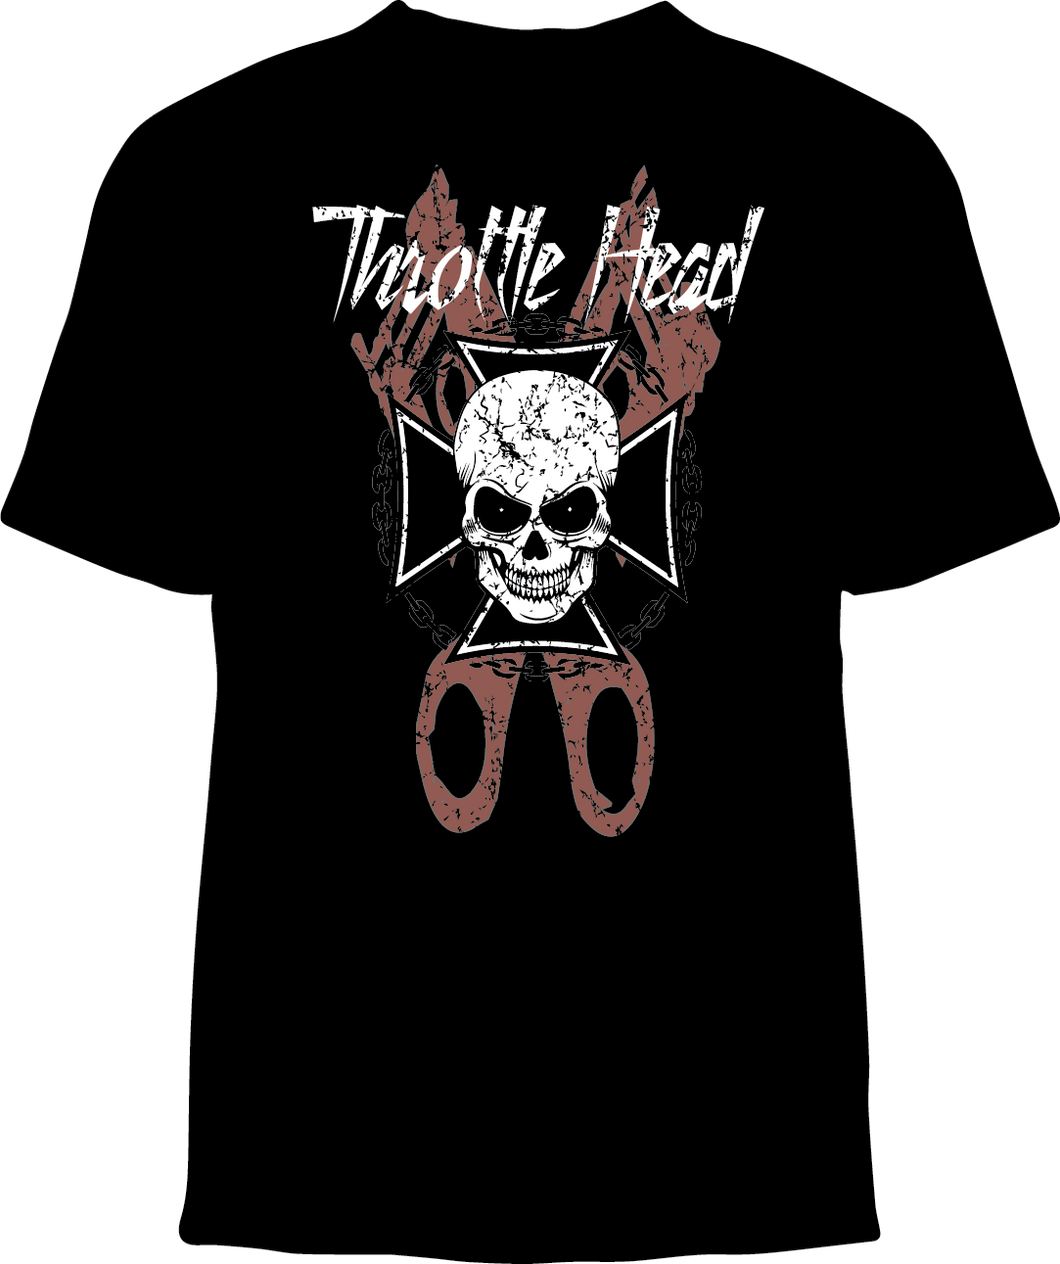 Skelebone Short Sleeve T-shirt, Throttle Head back print, SCC front logo print